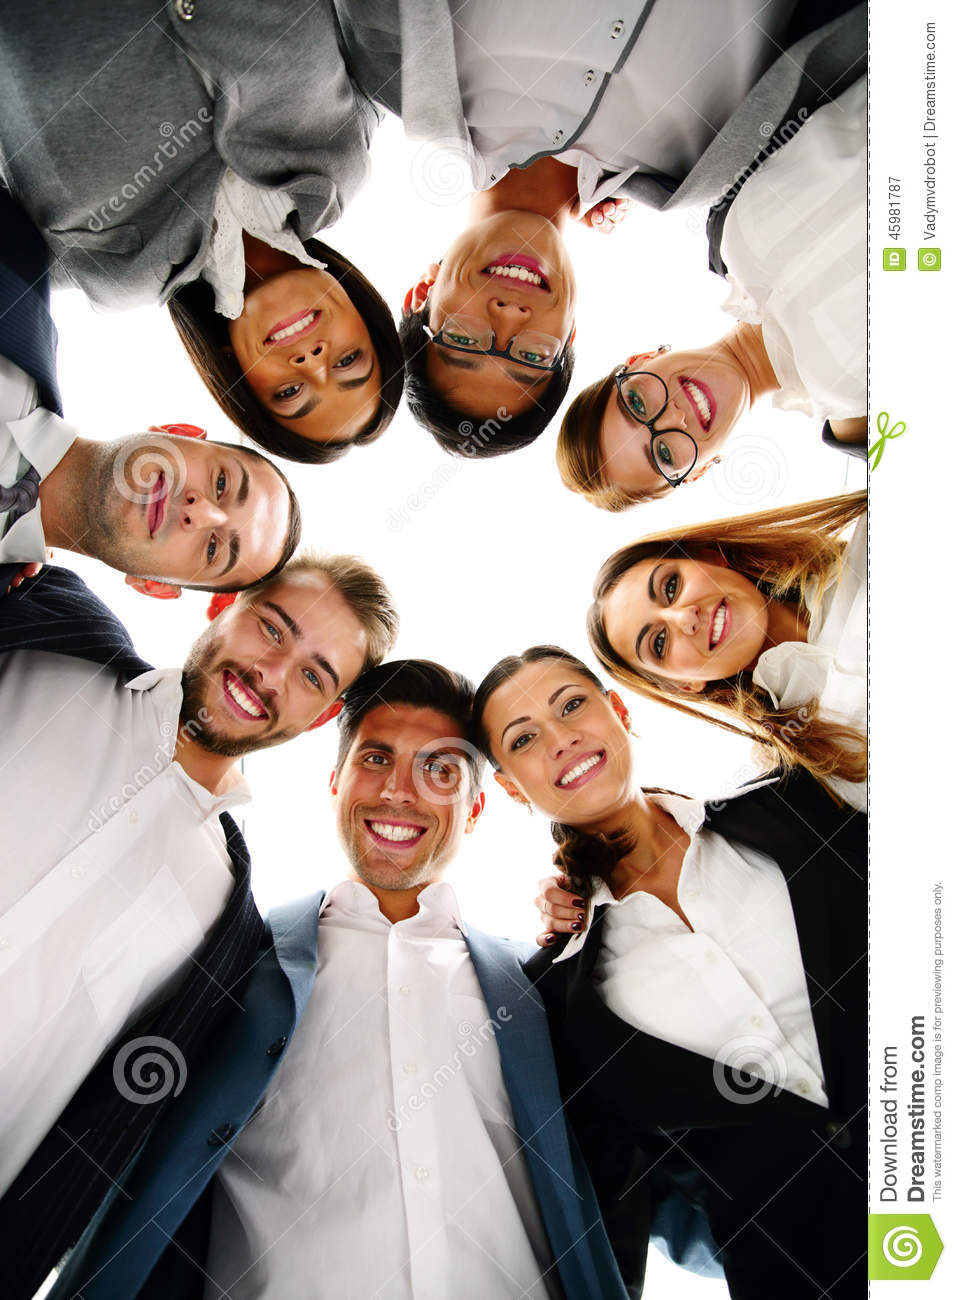 Business People Circle Looking Down Photos Free Royalty Free Stock Photos From Dreamstime